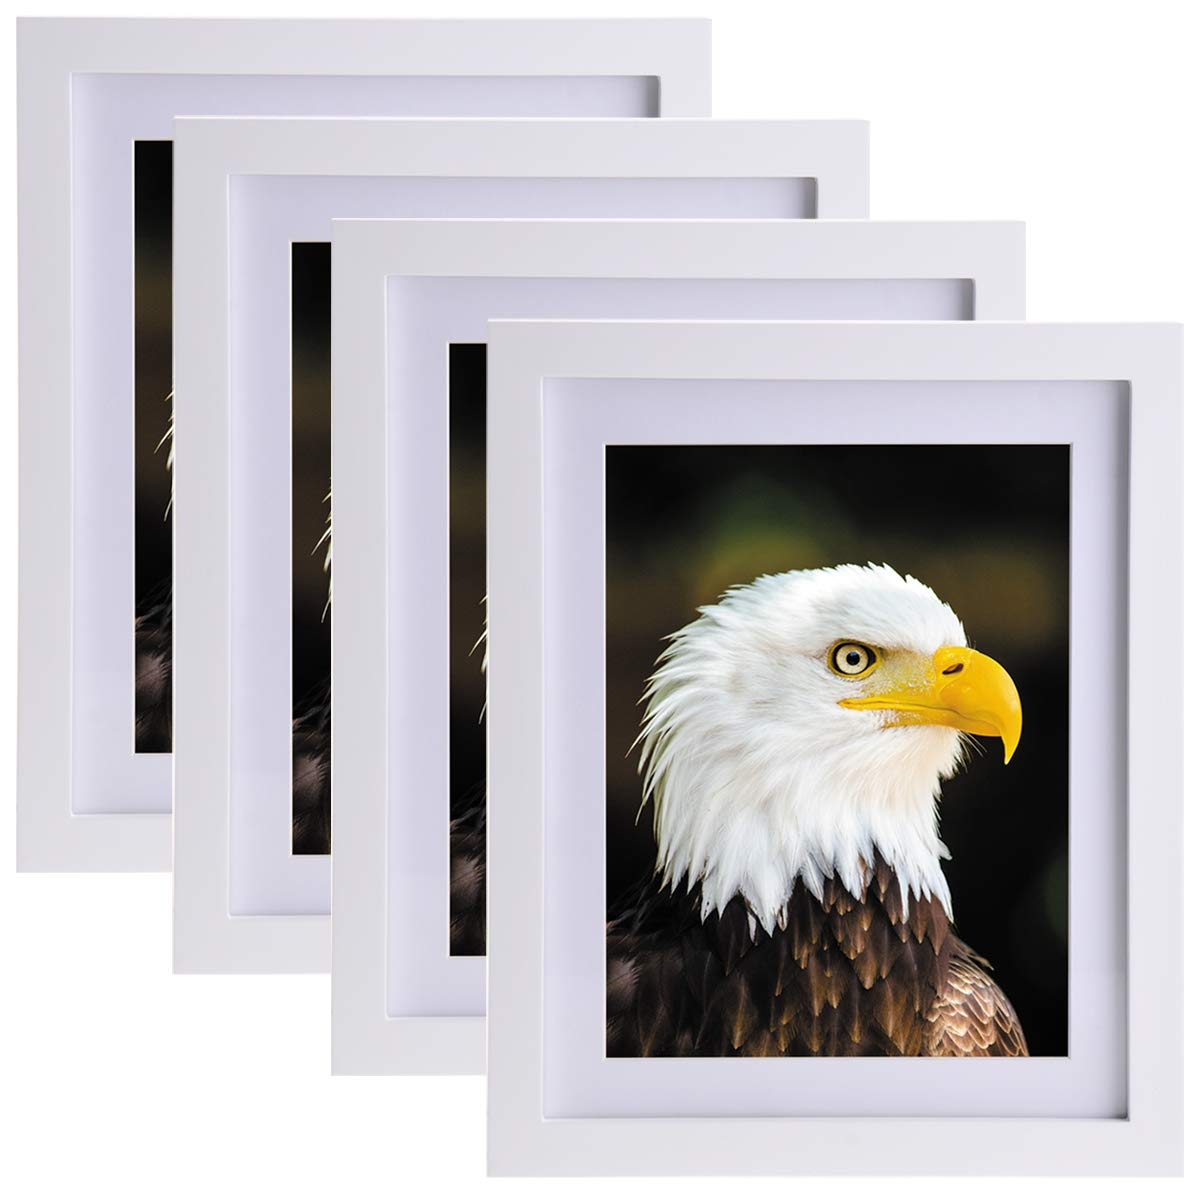 Solid Wood Picture Frames 8x10 - Hang on Wall Stand Hook Accessory Fashion Wooden Frame Stand Pictures Photos Landscape Family Portrait 8x10 Picture Frame Without Mat/ 6x8 Frame with Mat 4 Pack White by JAYONG